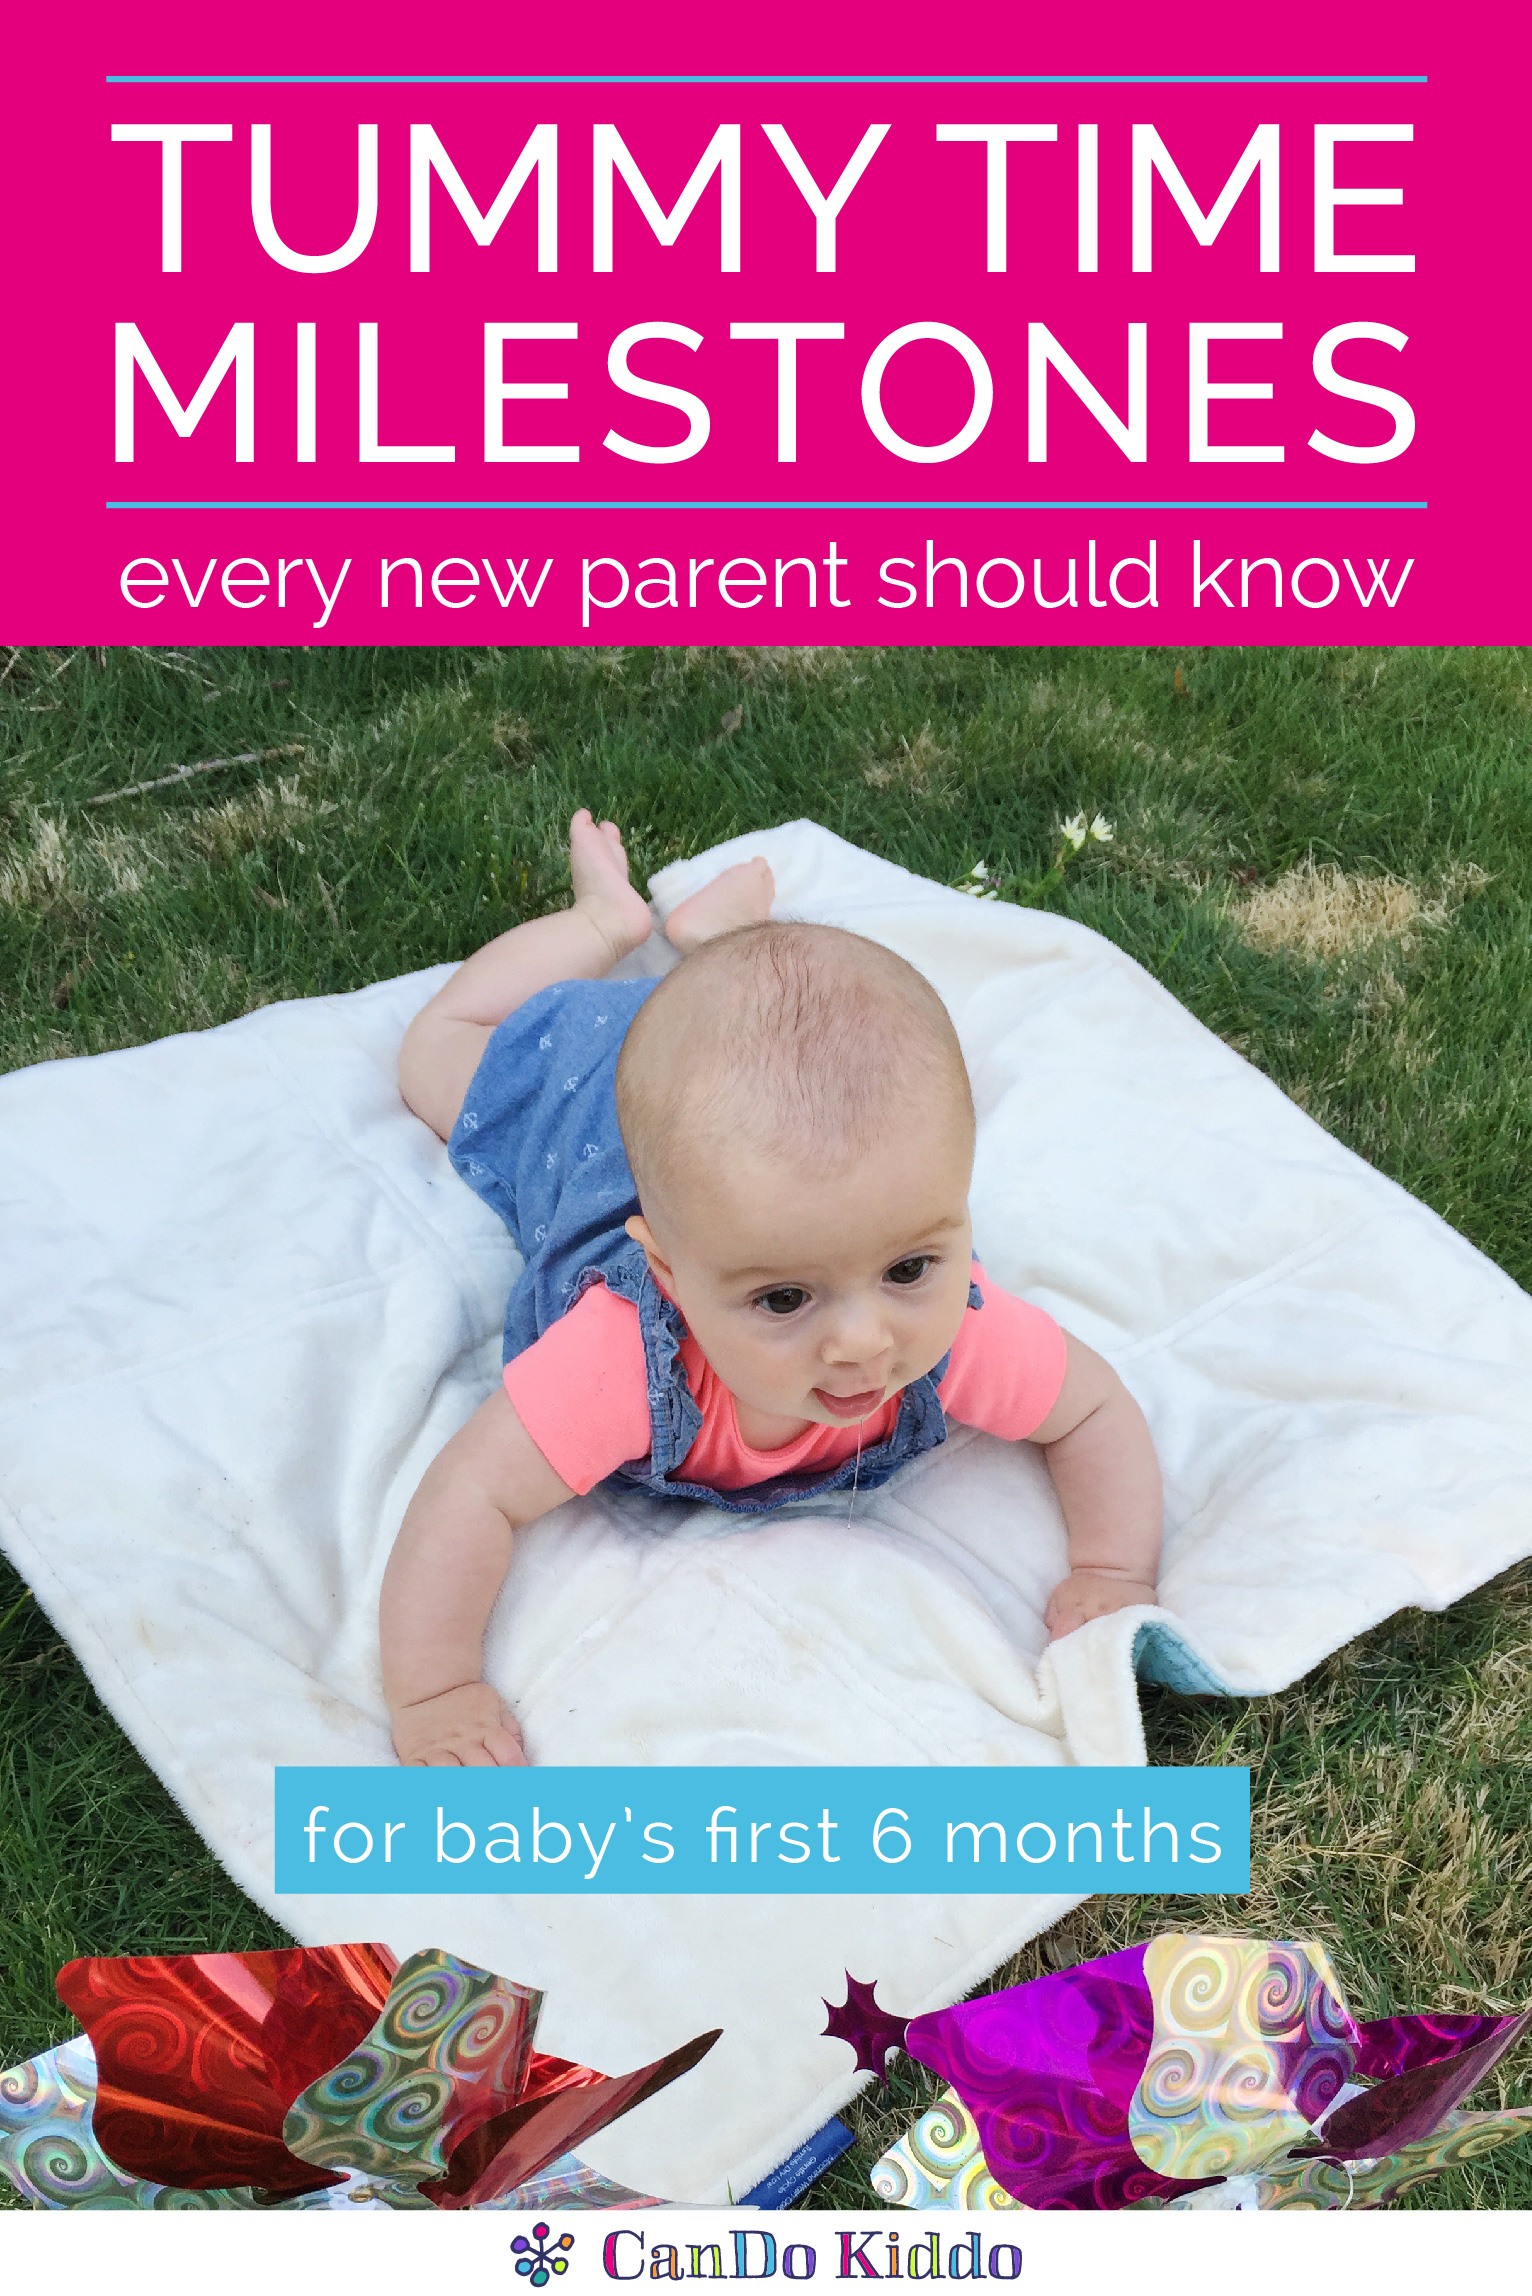 Tummy Time Milestones and Tips